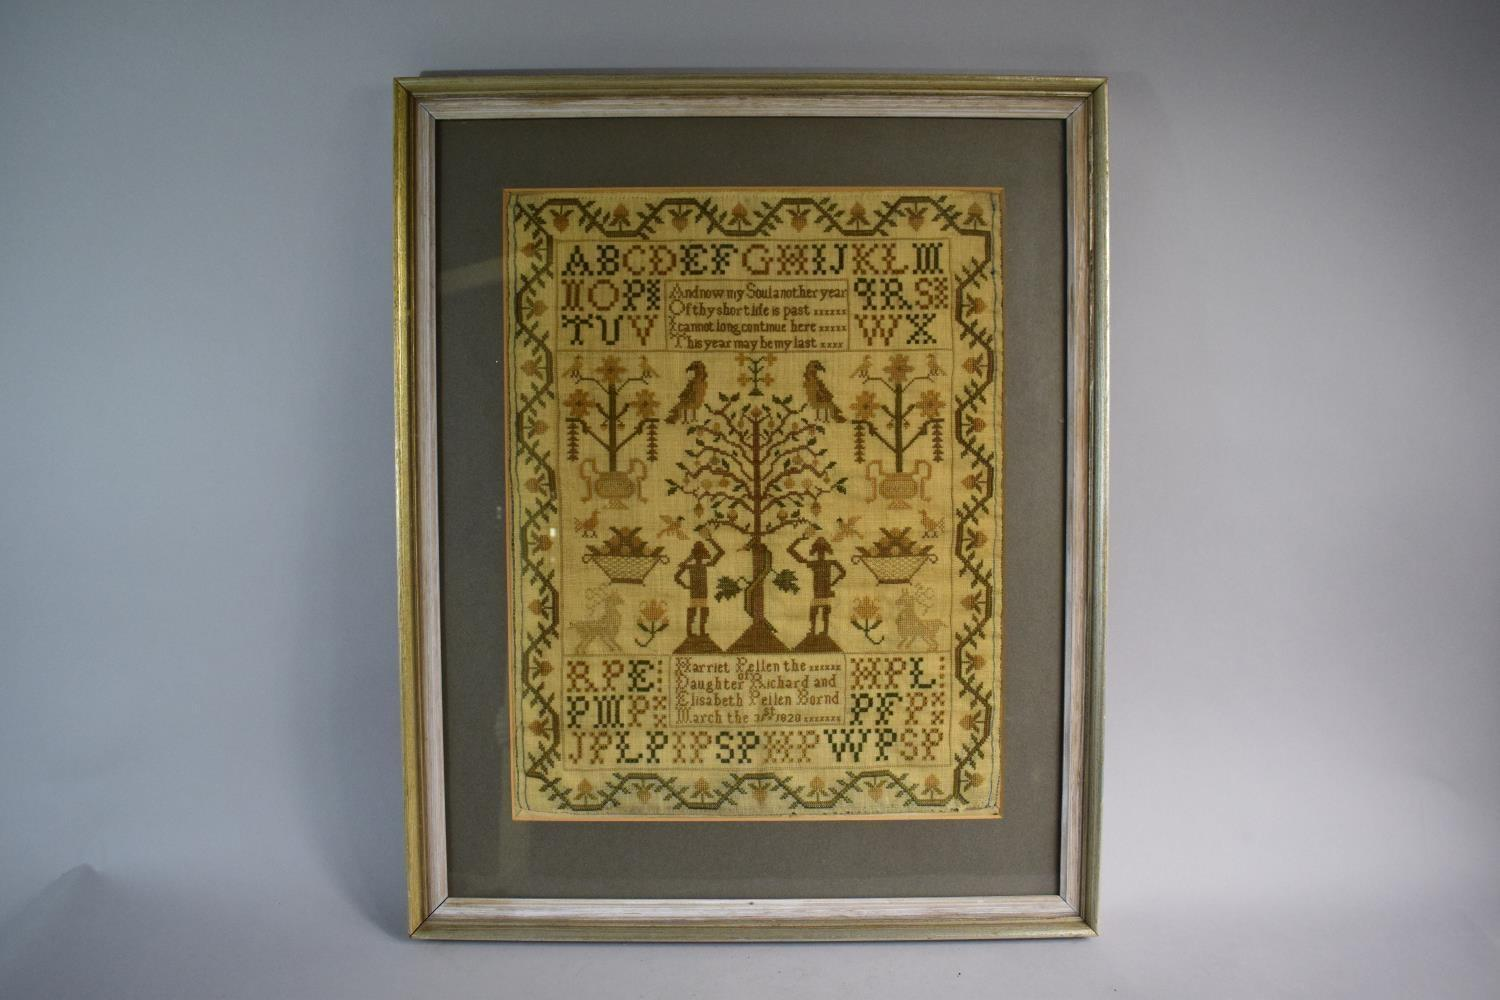 A Framed Early 19th Century Needlework Sampler Depicting Adam and Eve, Snake and Apple Tree Together